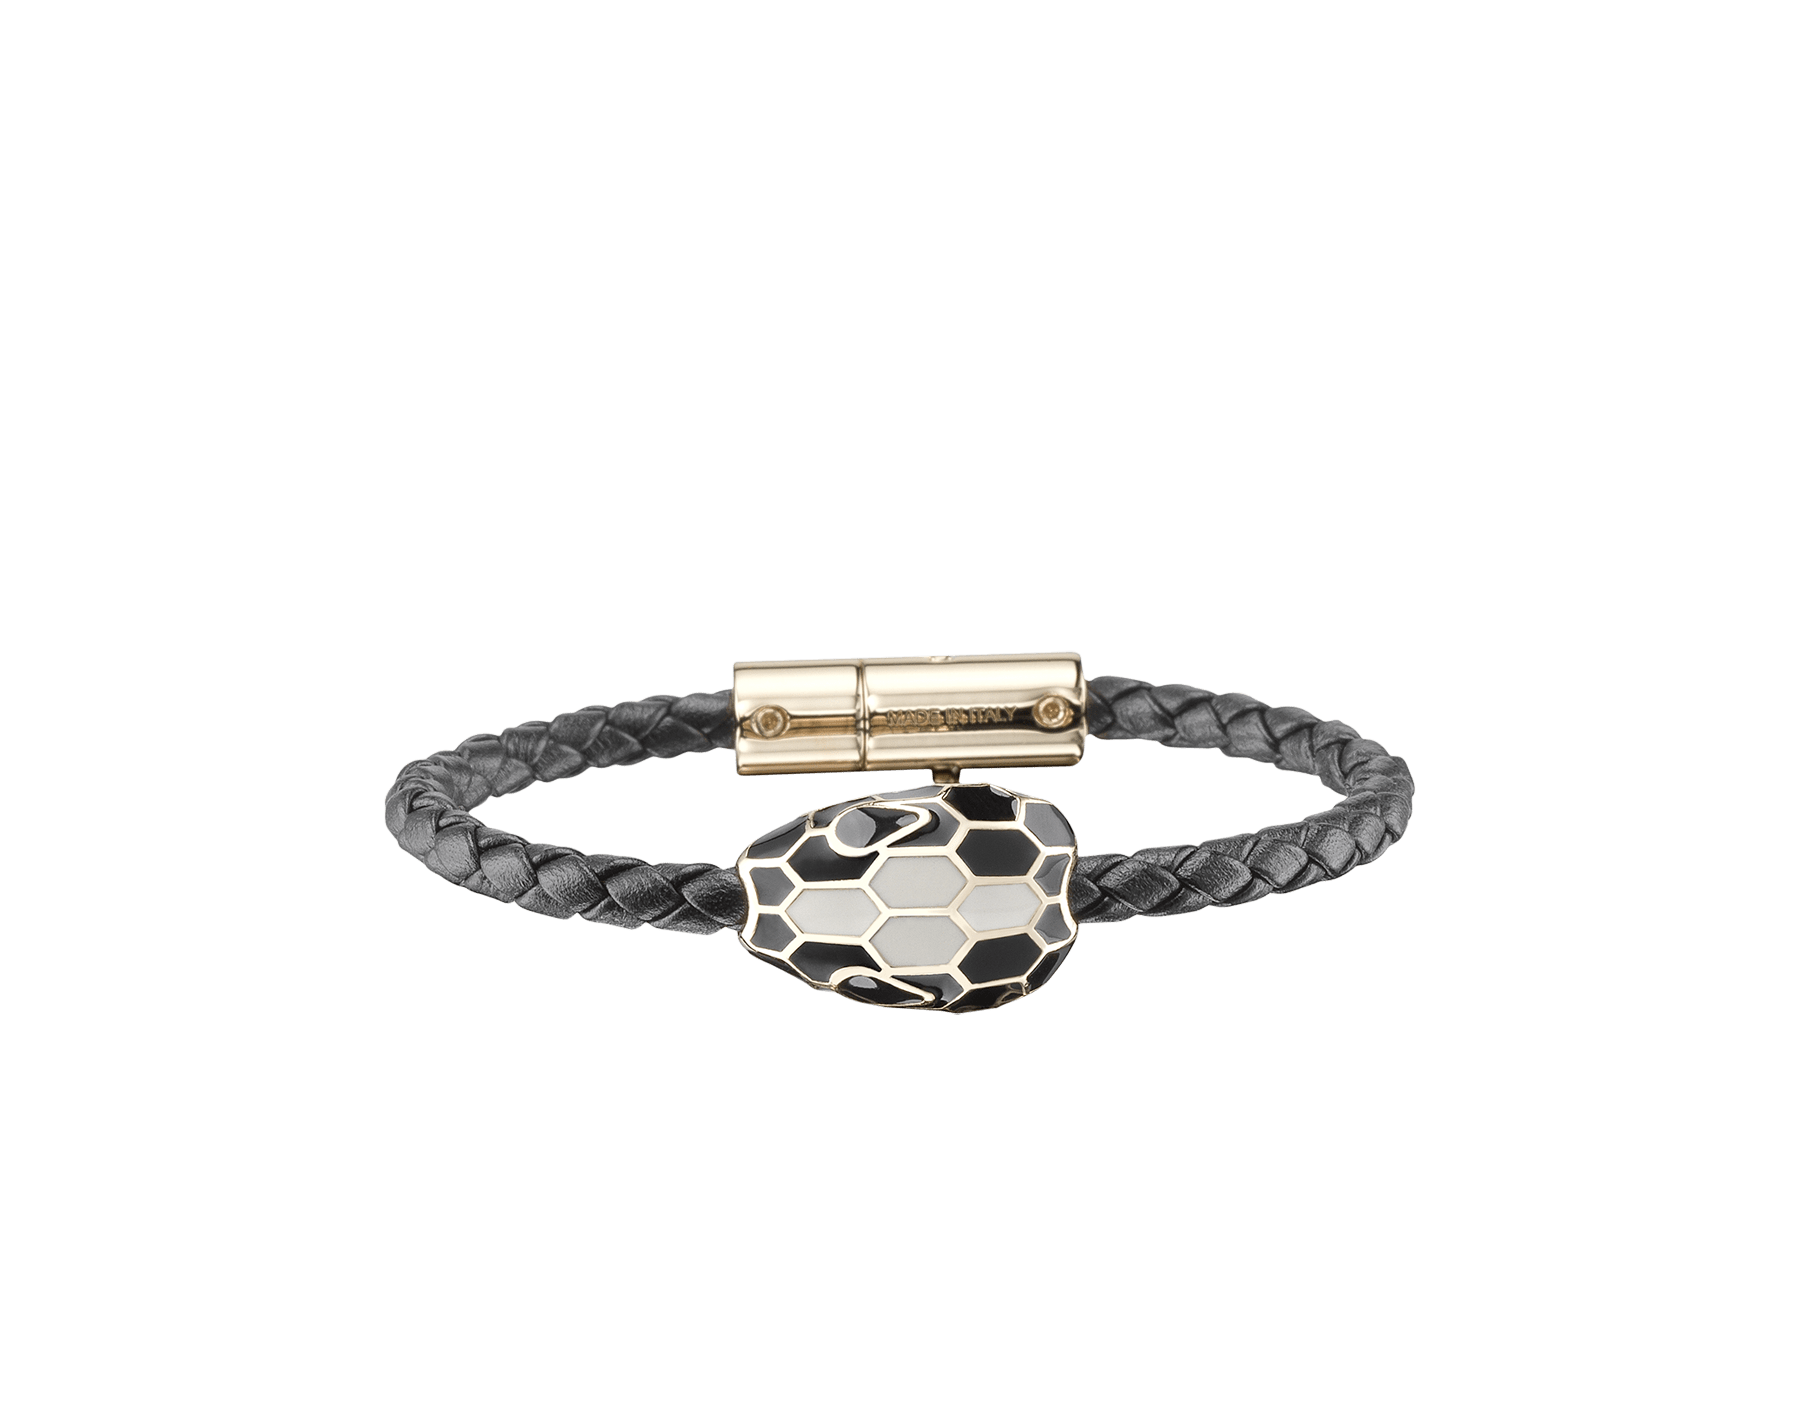 Serpenti Forever braid bracelet in black woven calf leather with an iconic snakehead décor in black and white enamel. SerpBraid-WCL-B image 1